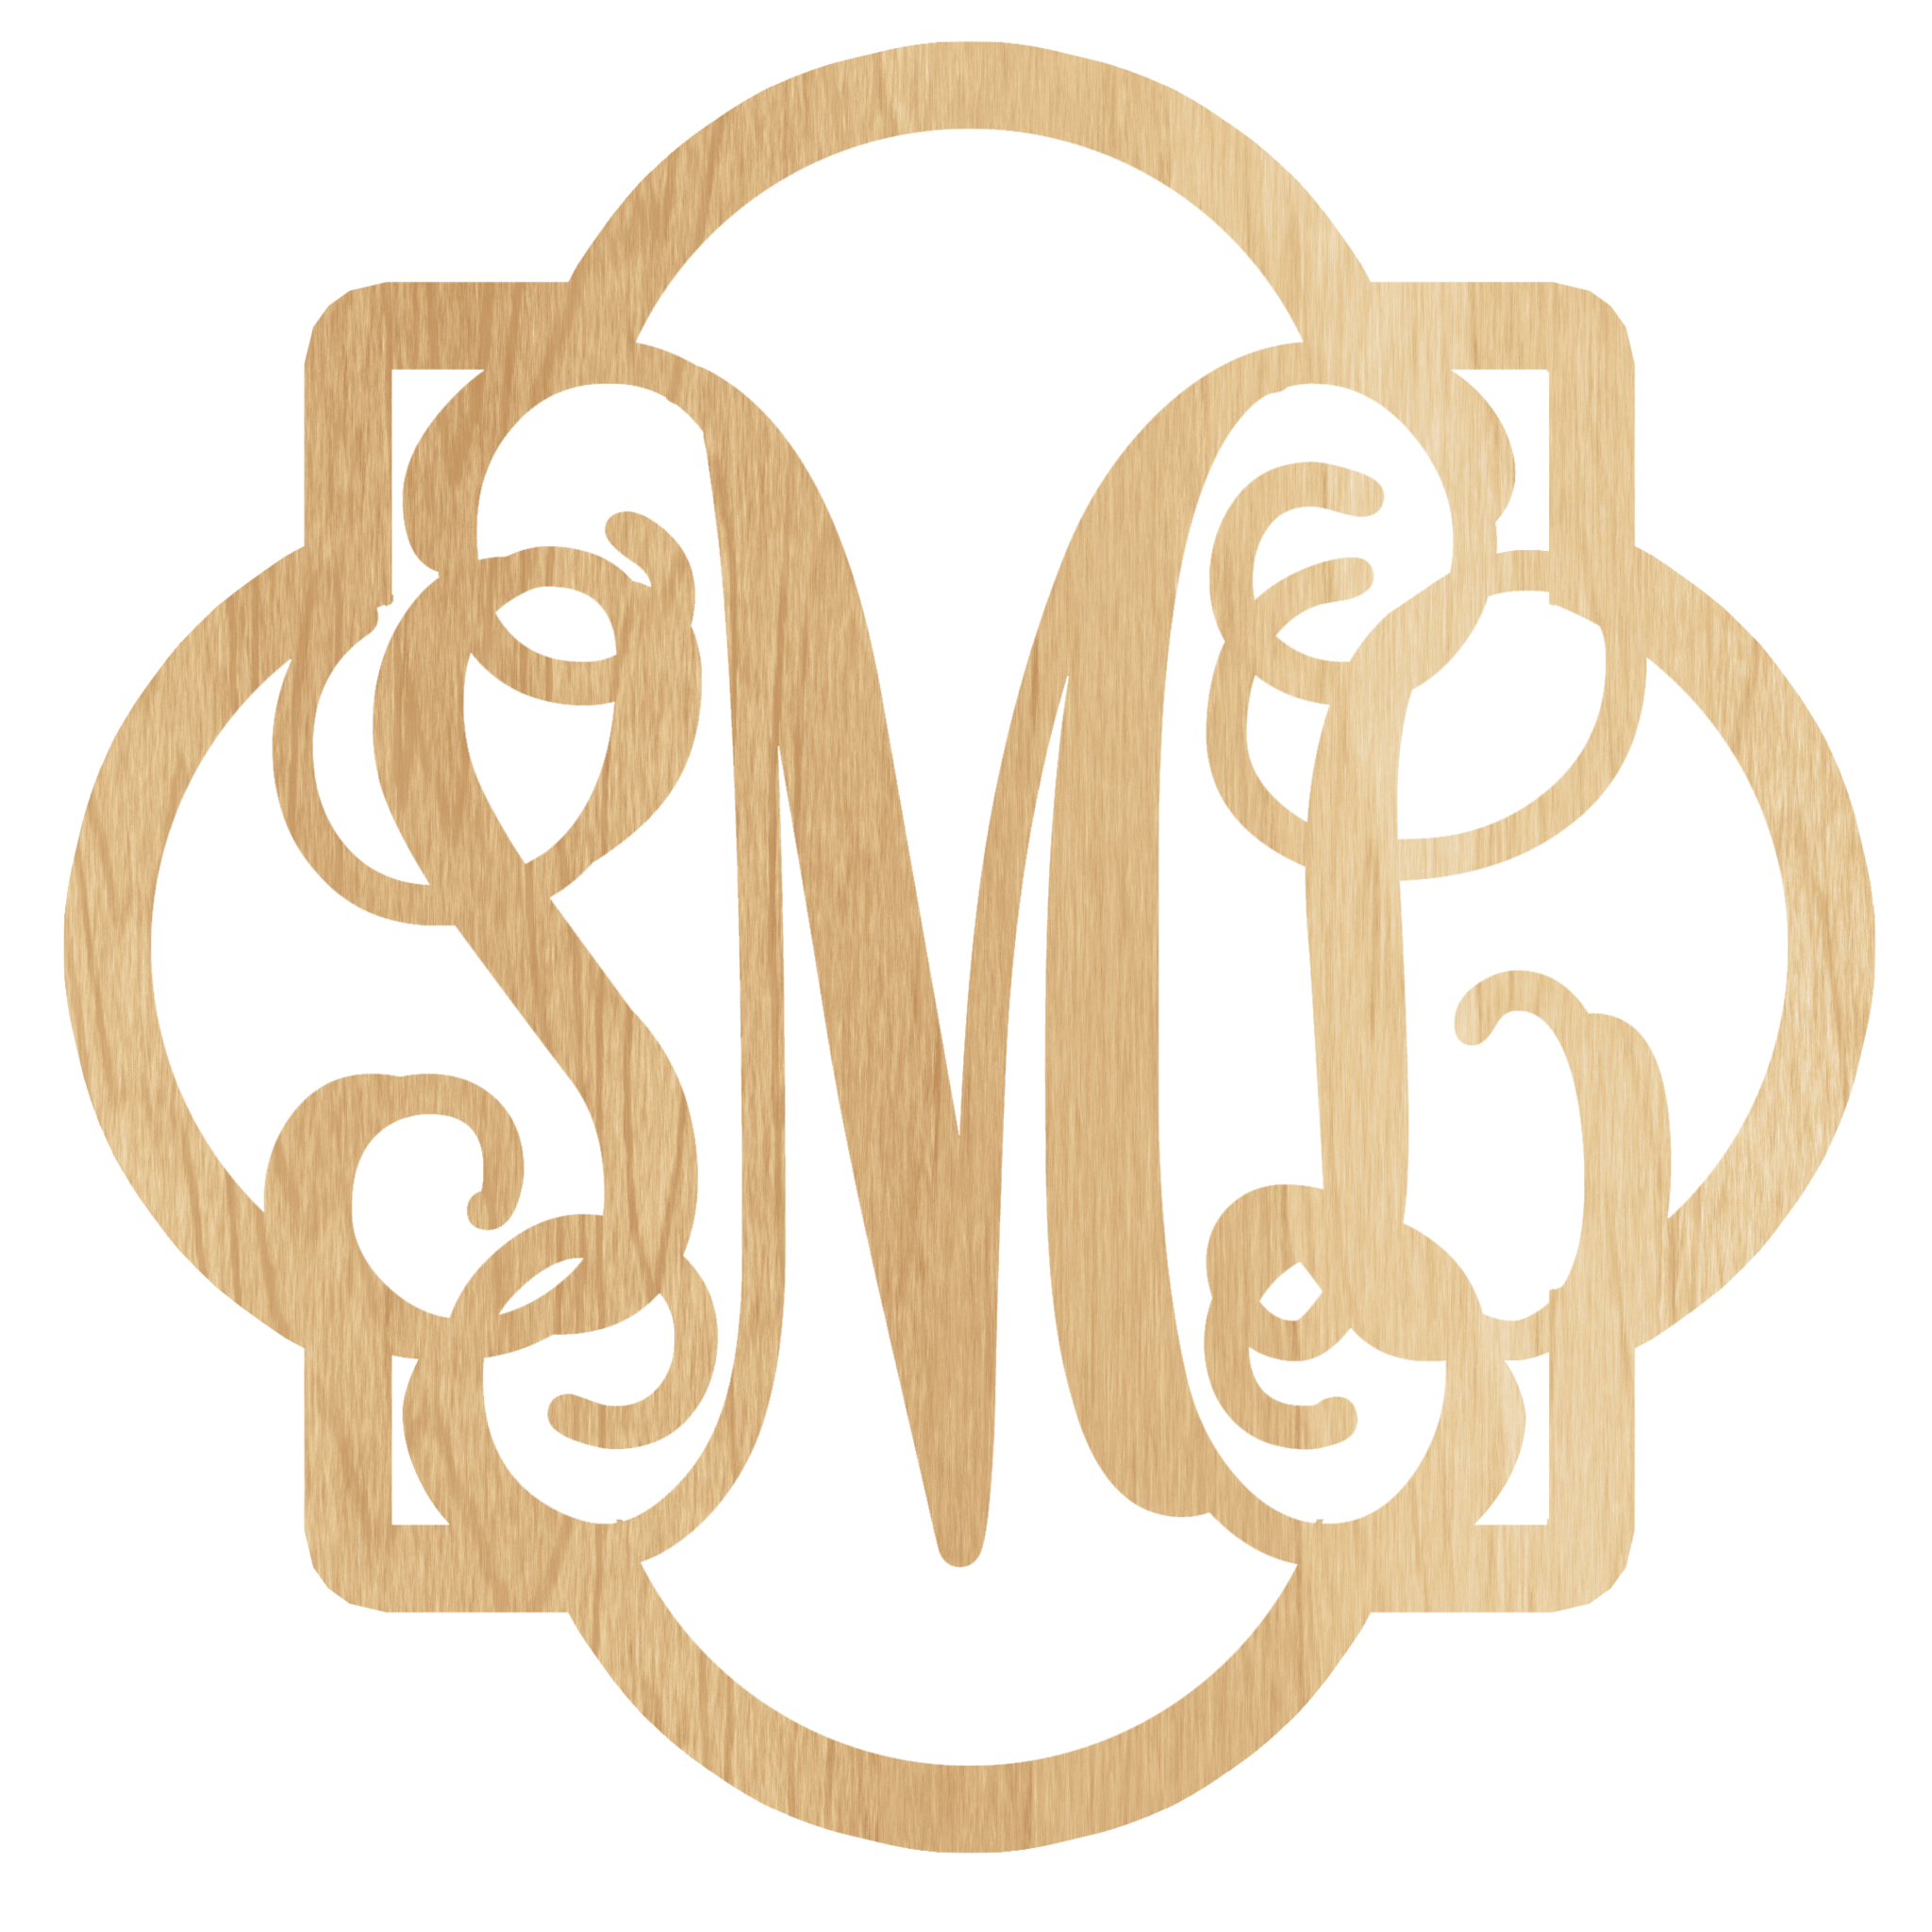 united monogram u0026 39 s wooden monograms come in many different sizes